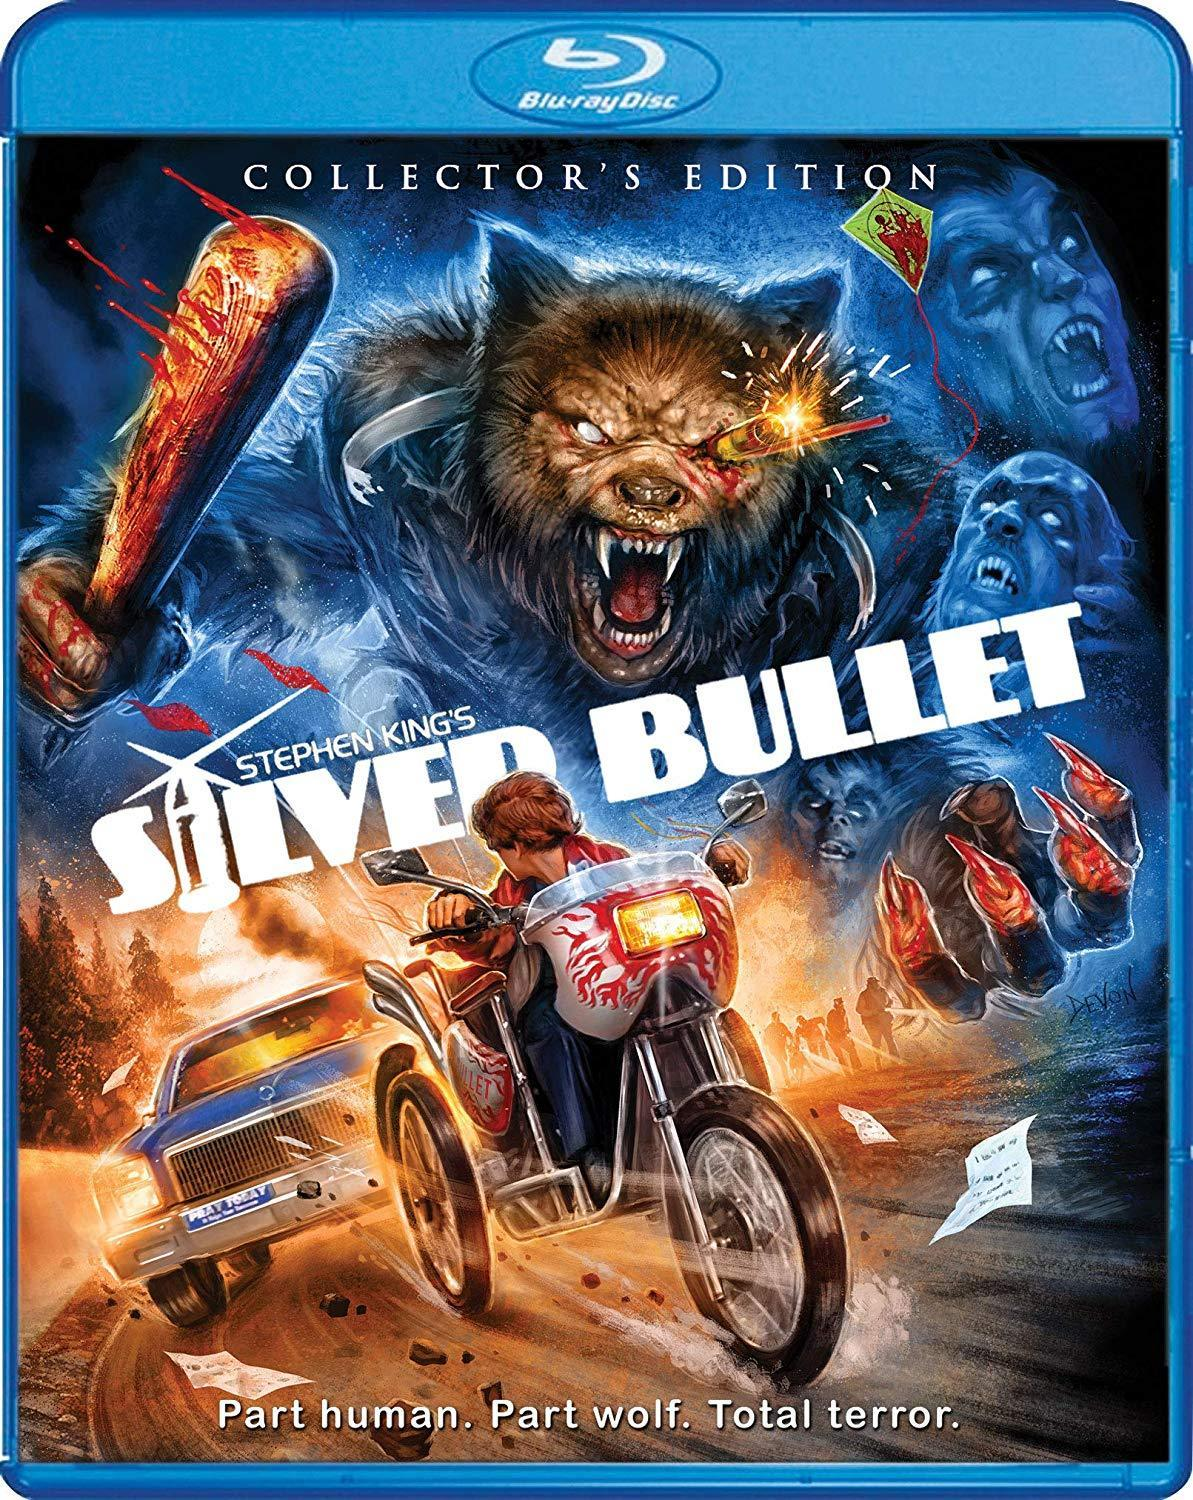 Silver Bullet Blu-Ray Cover